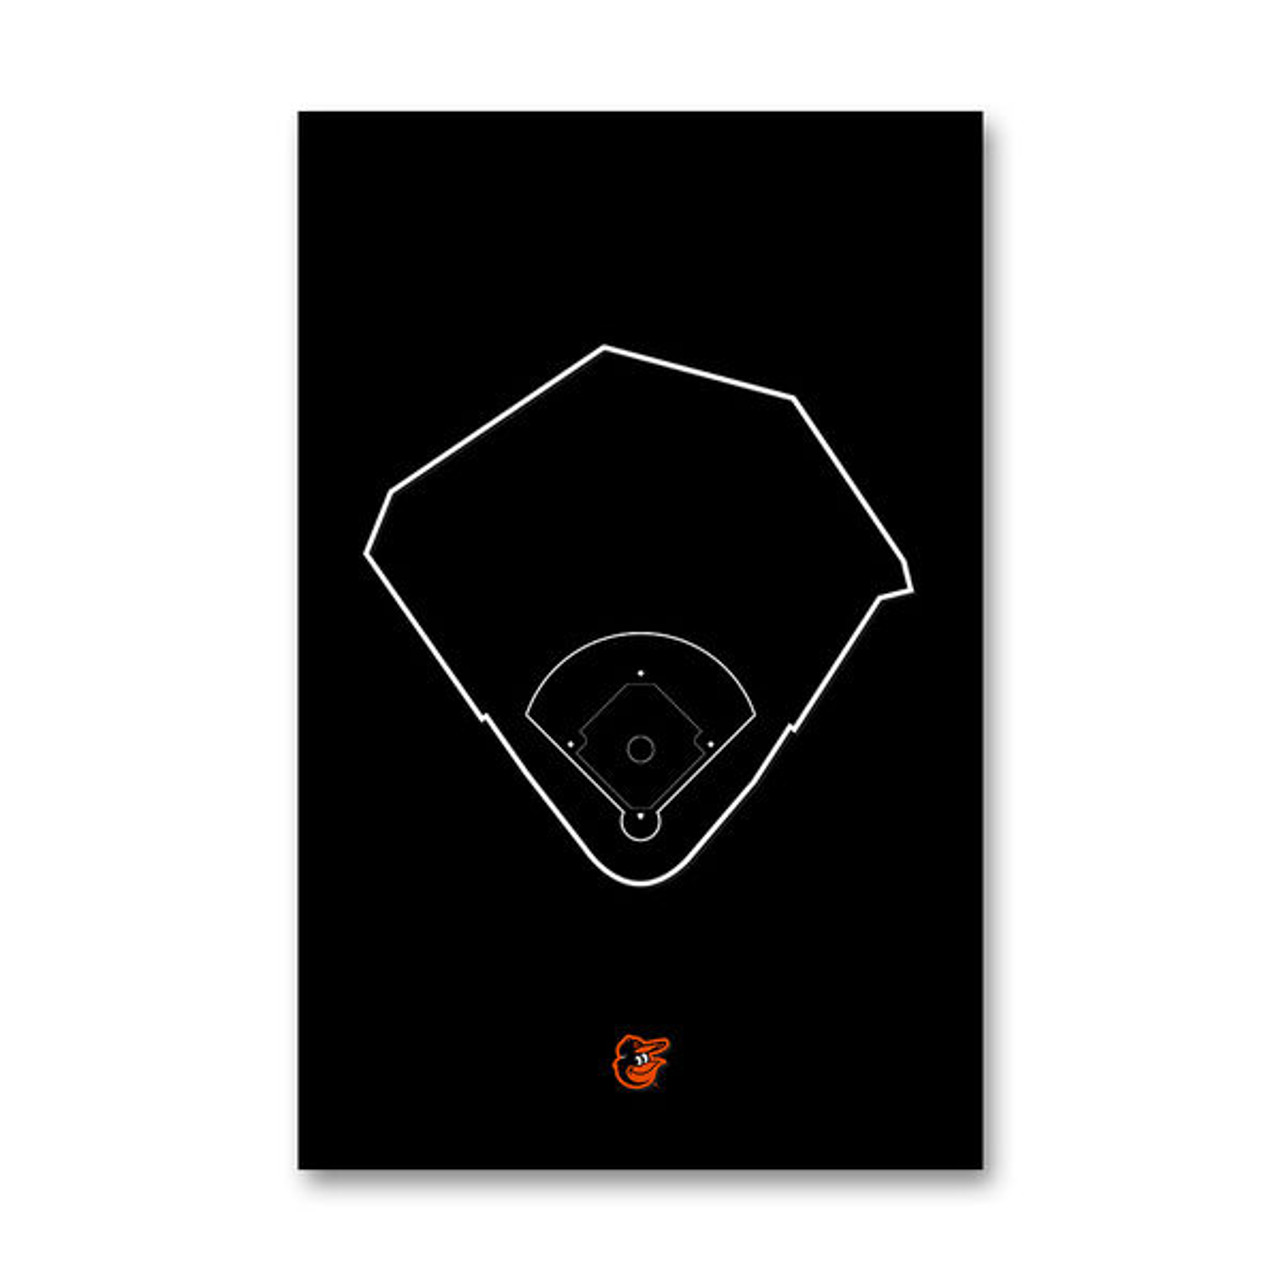 Camden Yards Outline - Baltimore Orioles Art Poster